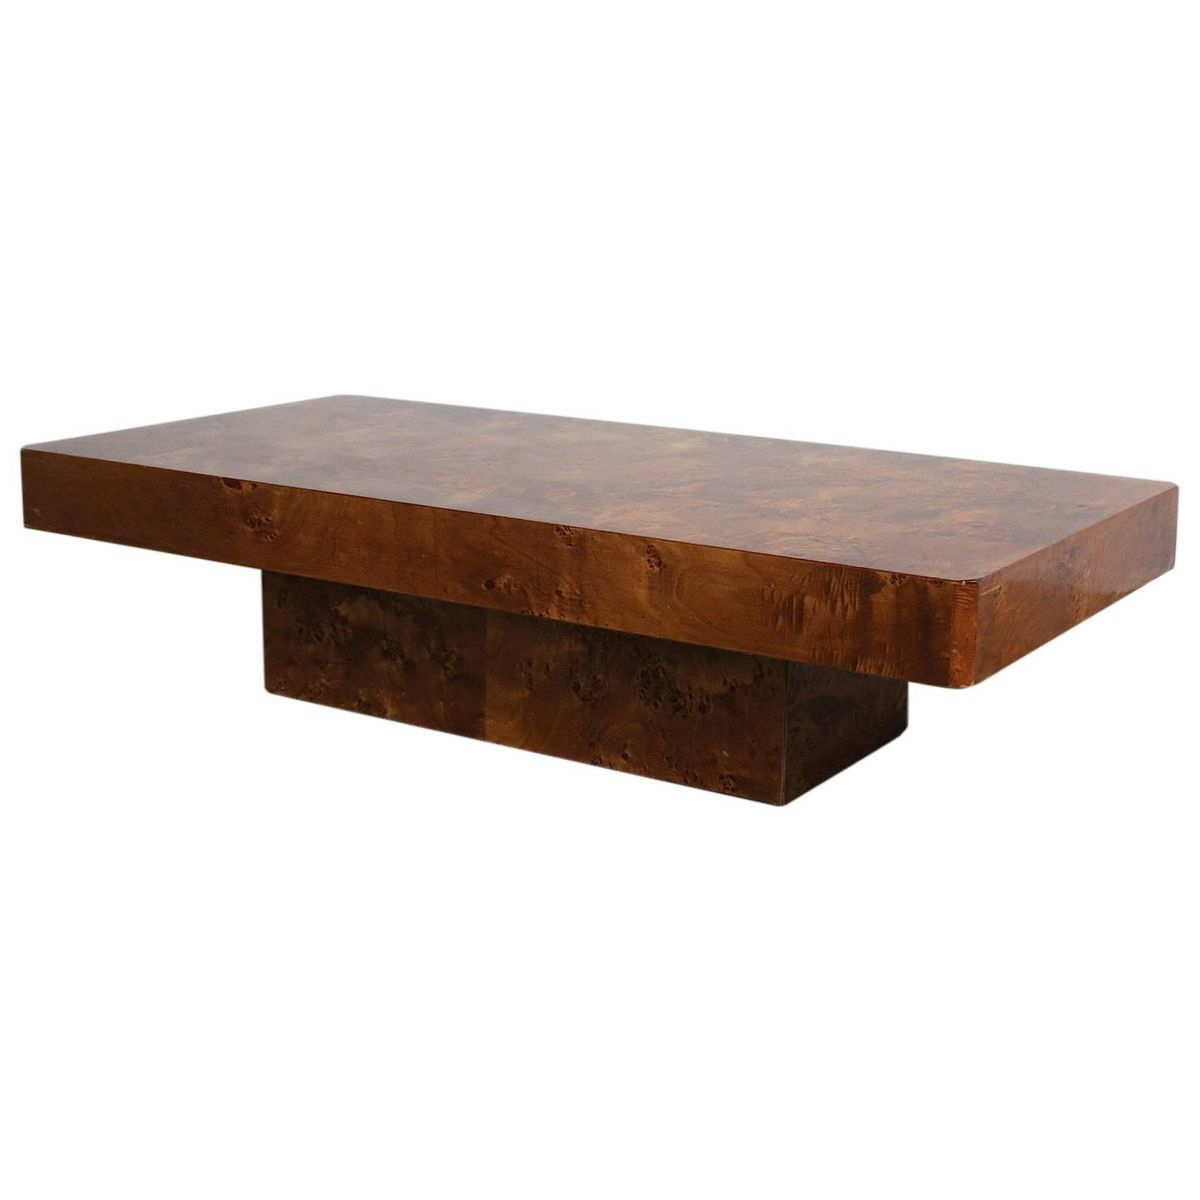 Most Current Vintage French Burl Wood Coffee Table For Sale At Pamono Throughout Vintage Wood Coffee Tables (View 7 of 20)